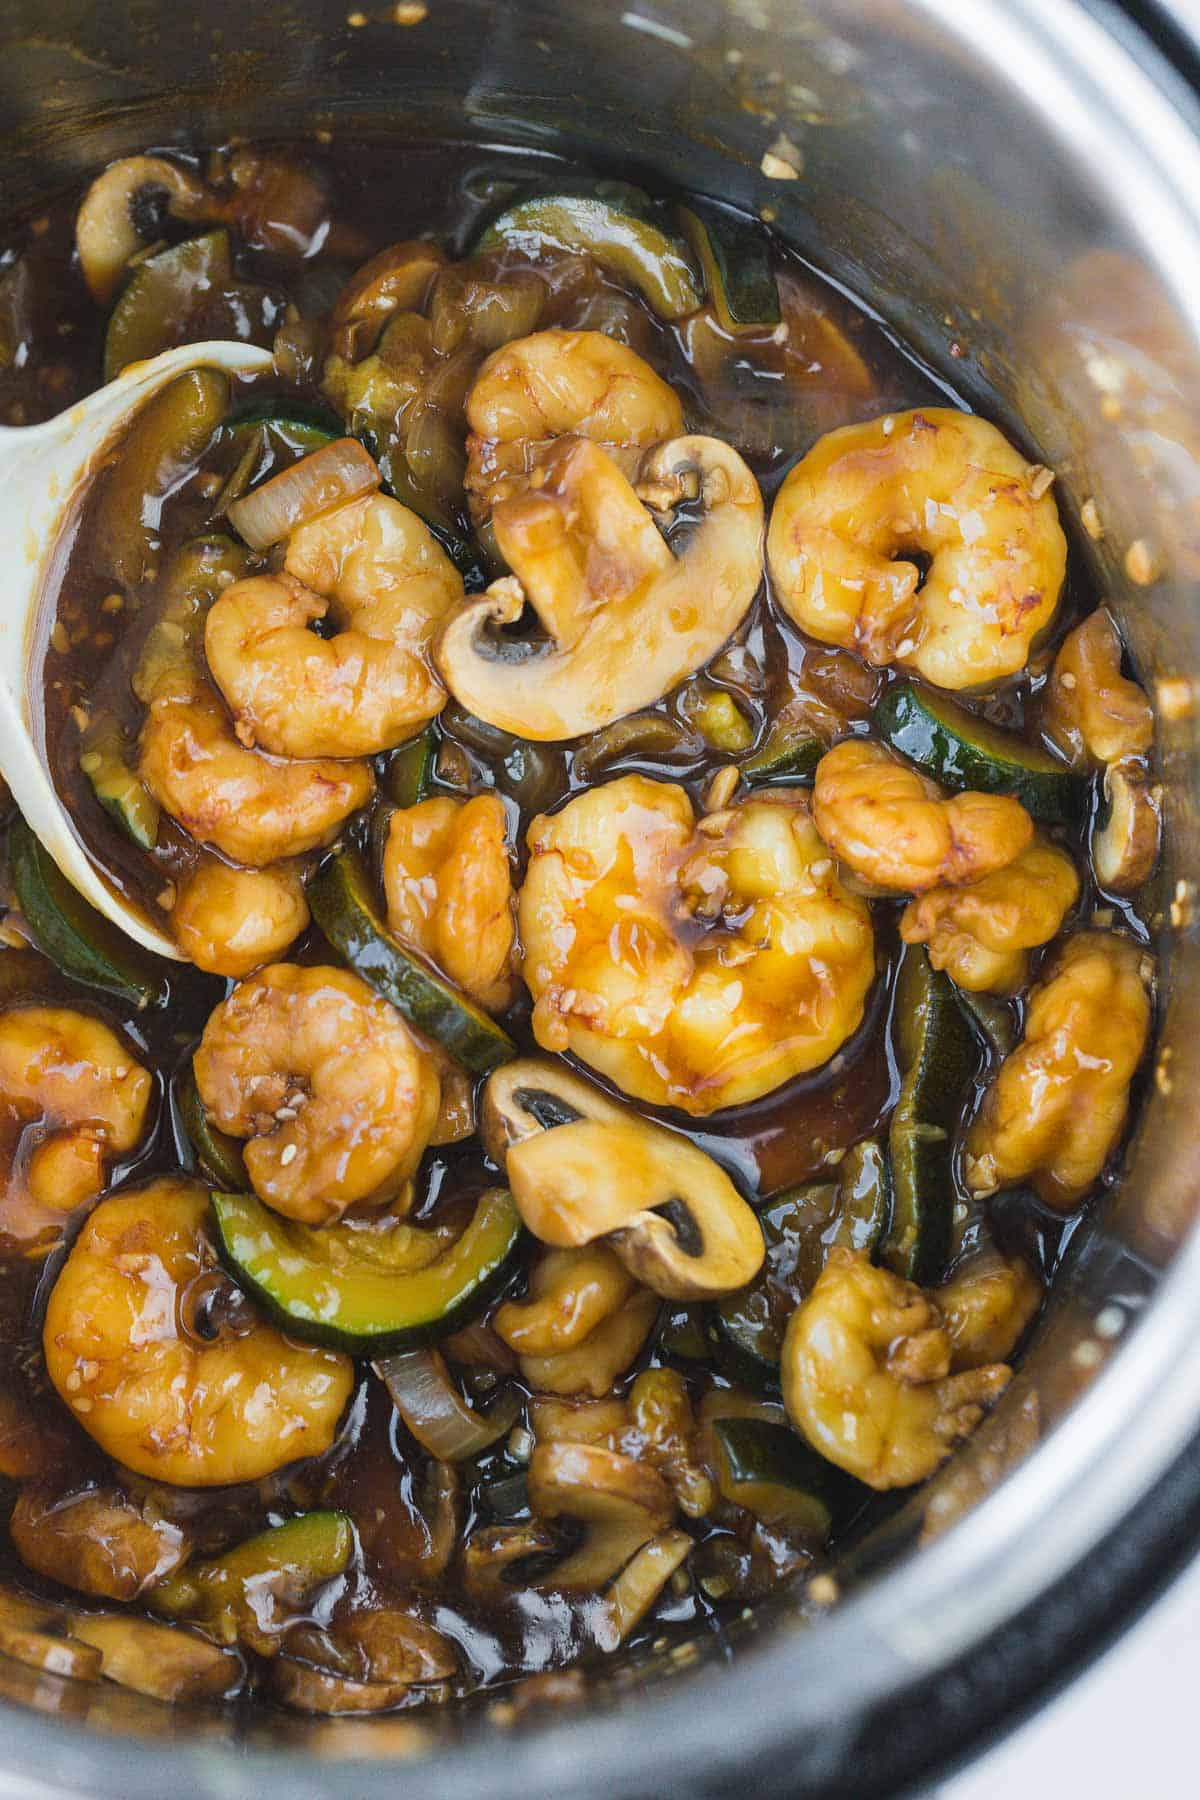 Shrimp hibachi cooked in the instant pot photographed with a serving spoon